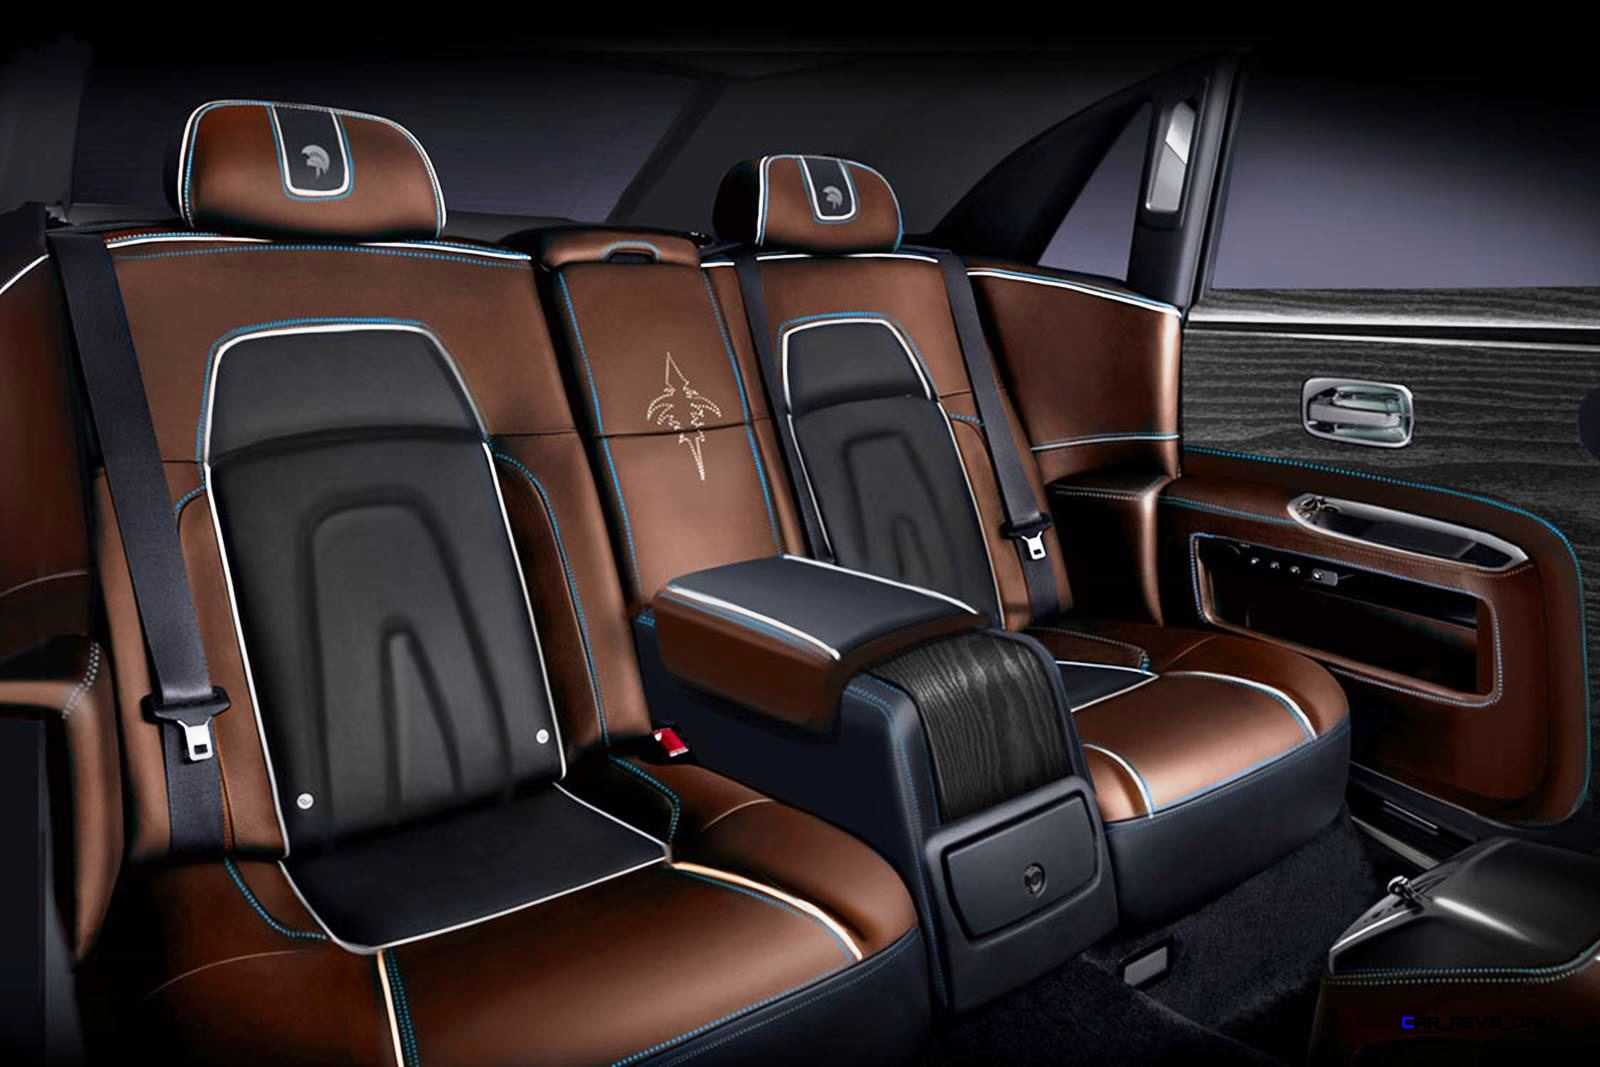 Ares Concept Rolls Royce Ghost Suv Int 2